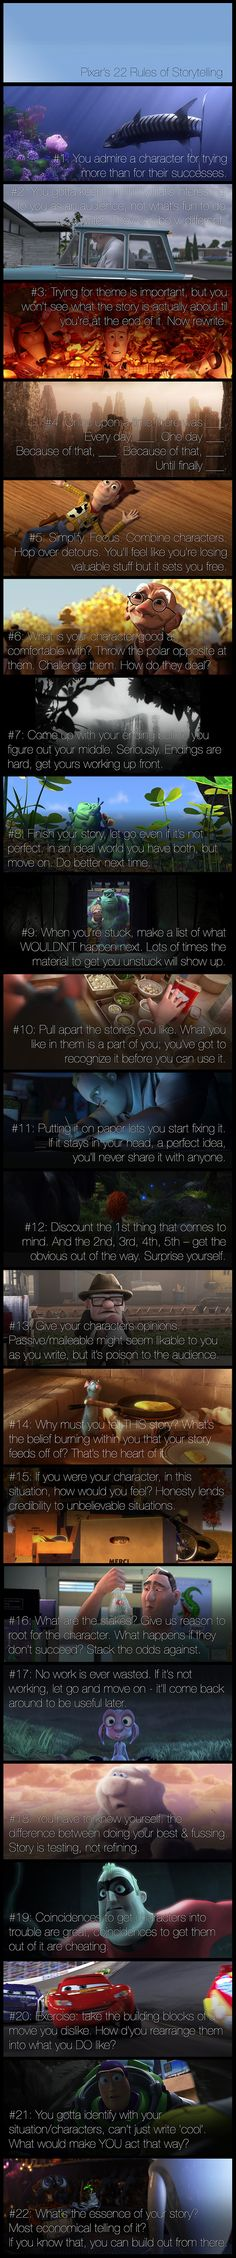 Dino Ignacio Pixar 22 Rules For Screenplay Writing Emma Coats>>Can also help with writing and story plotting